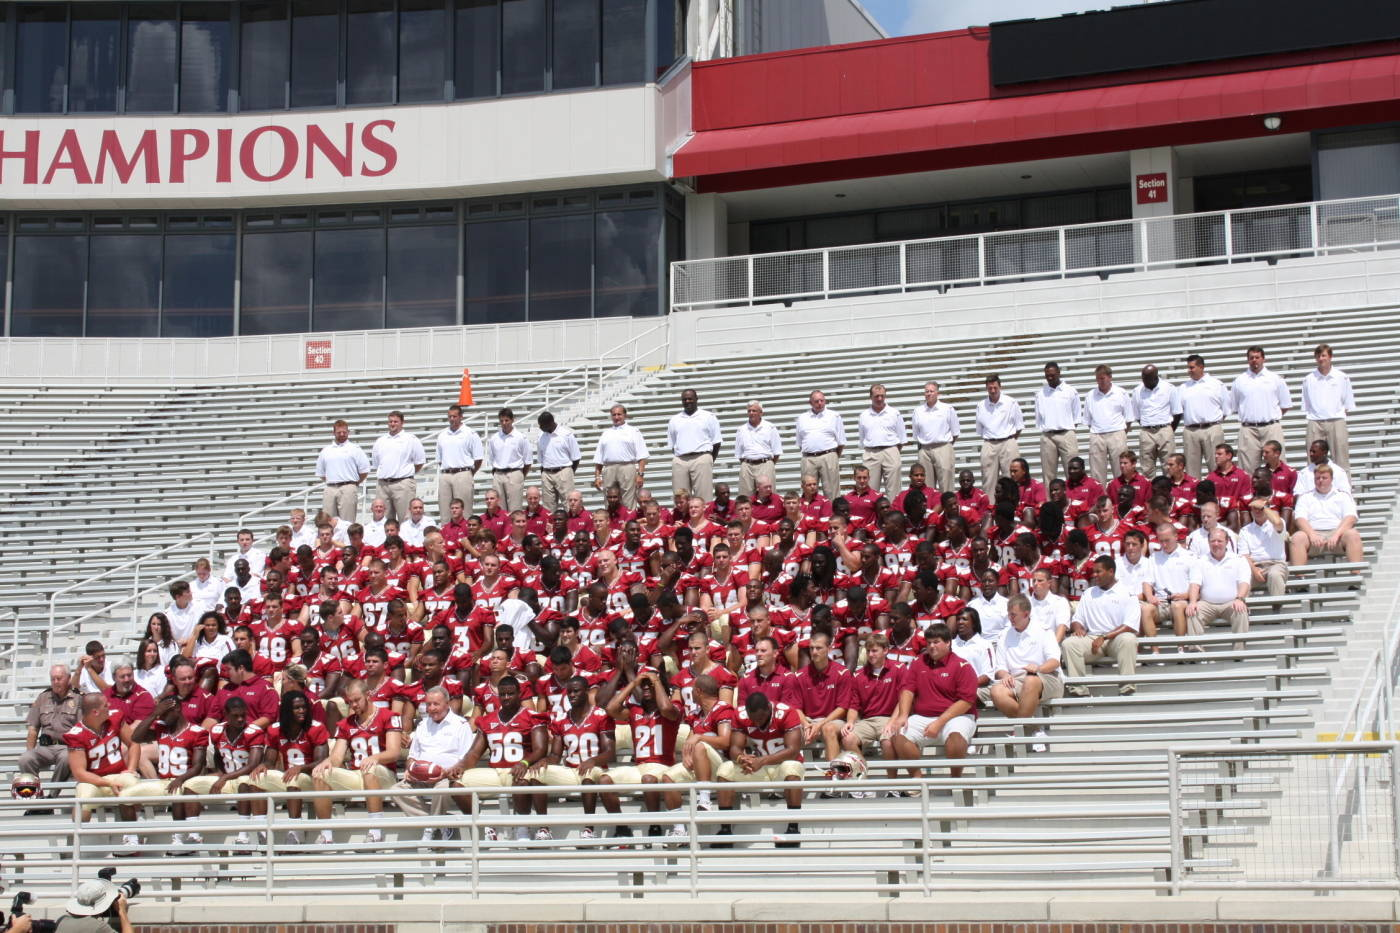 2009 Florida State Football Team